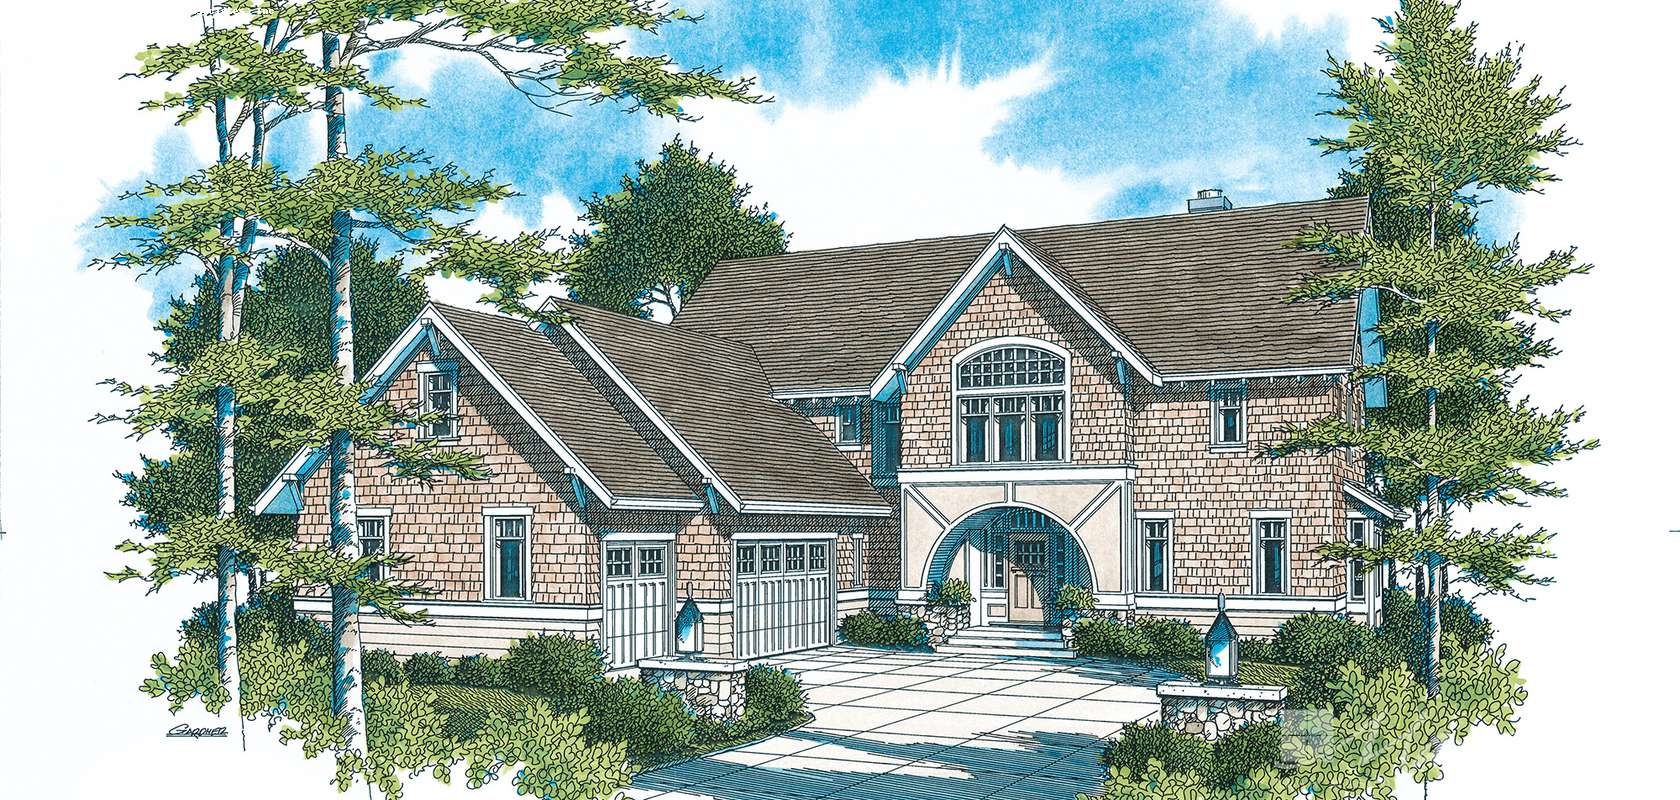 Mascord House Plan 22119: The Downing